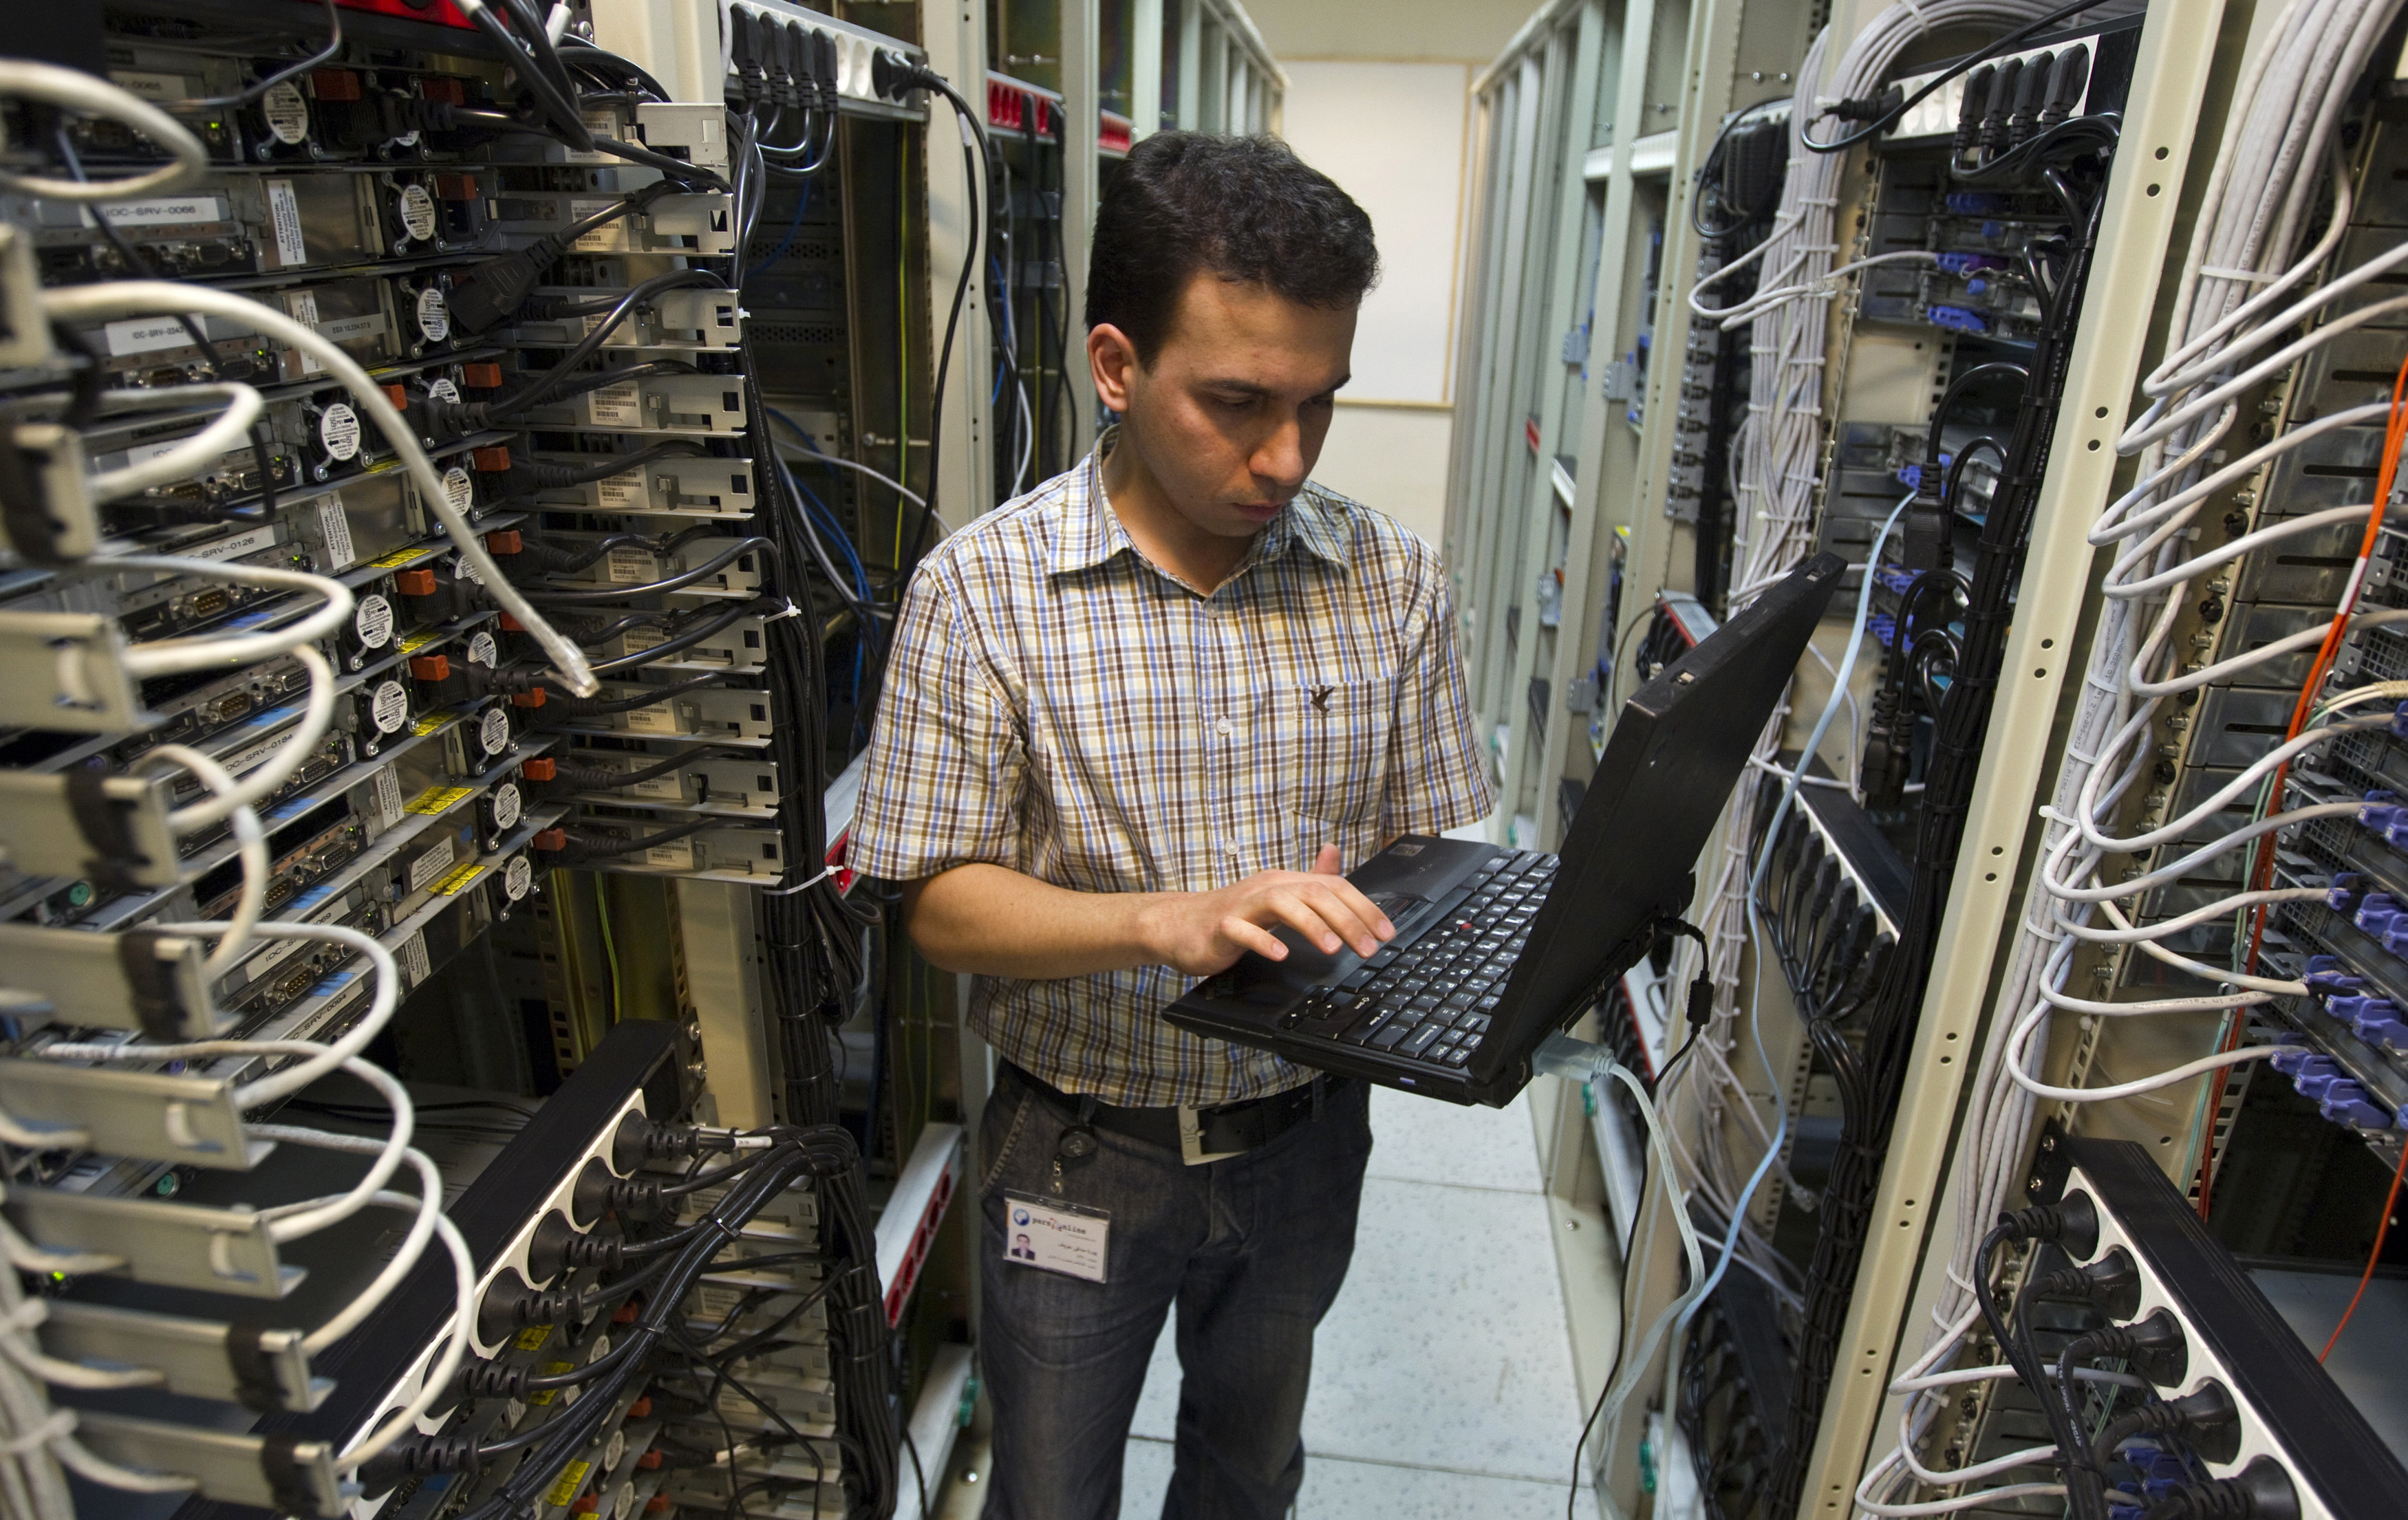 A computer engineer checks equipment at an internet service provider in Tehran February 15, 2011. Websites like Facebook, Twitter, YouTube and countless others were banned shortly after the re-election of Iran's President Mahmoud Ahmadinejad and the huge street protests that followed. Seen by the government as part of a